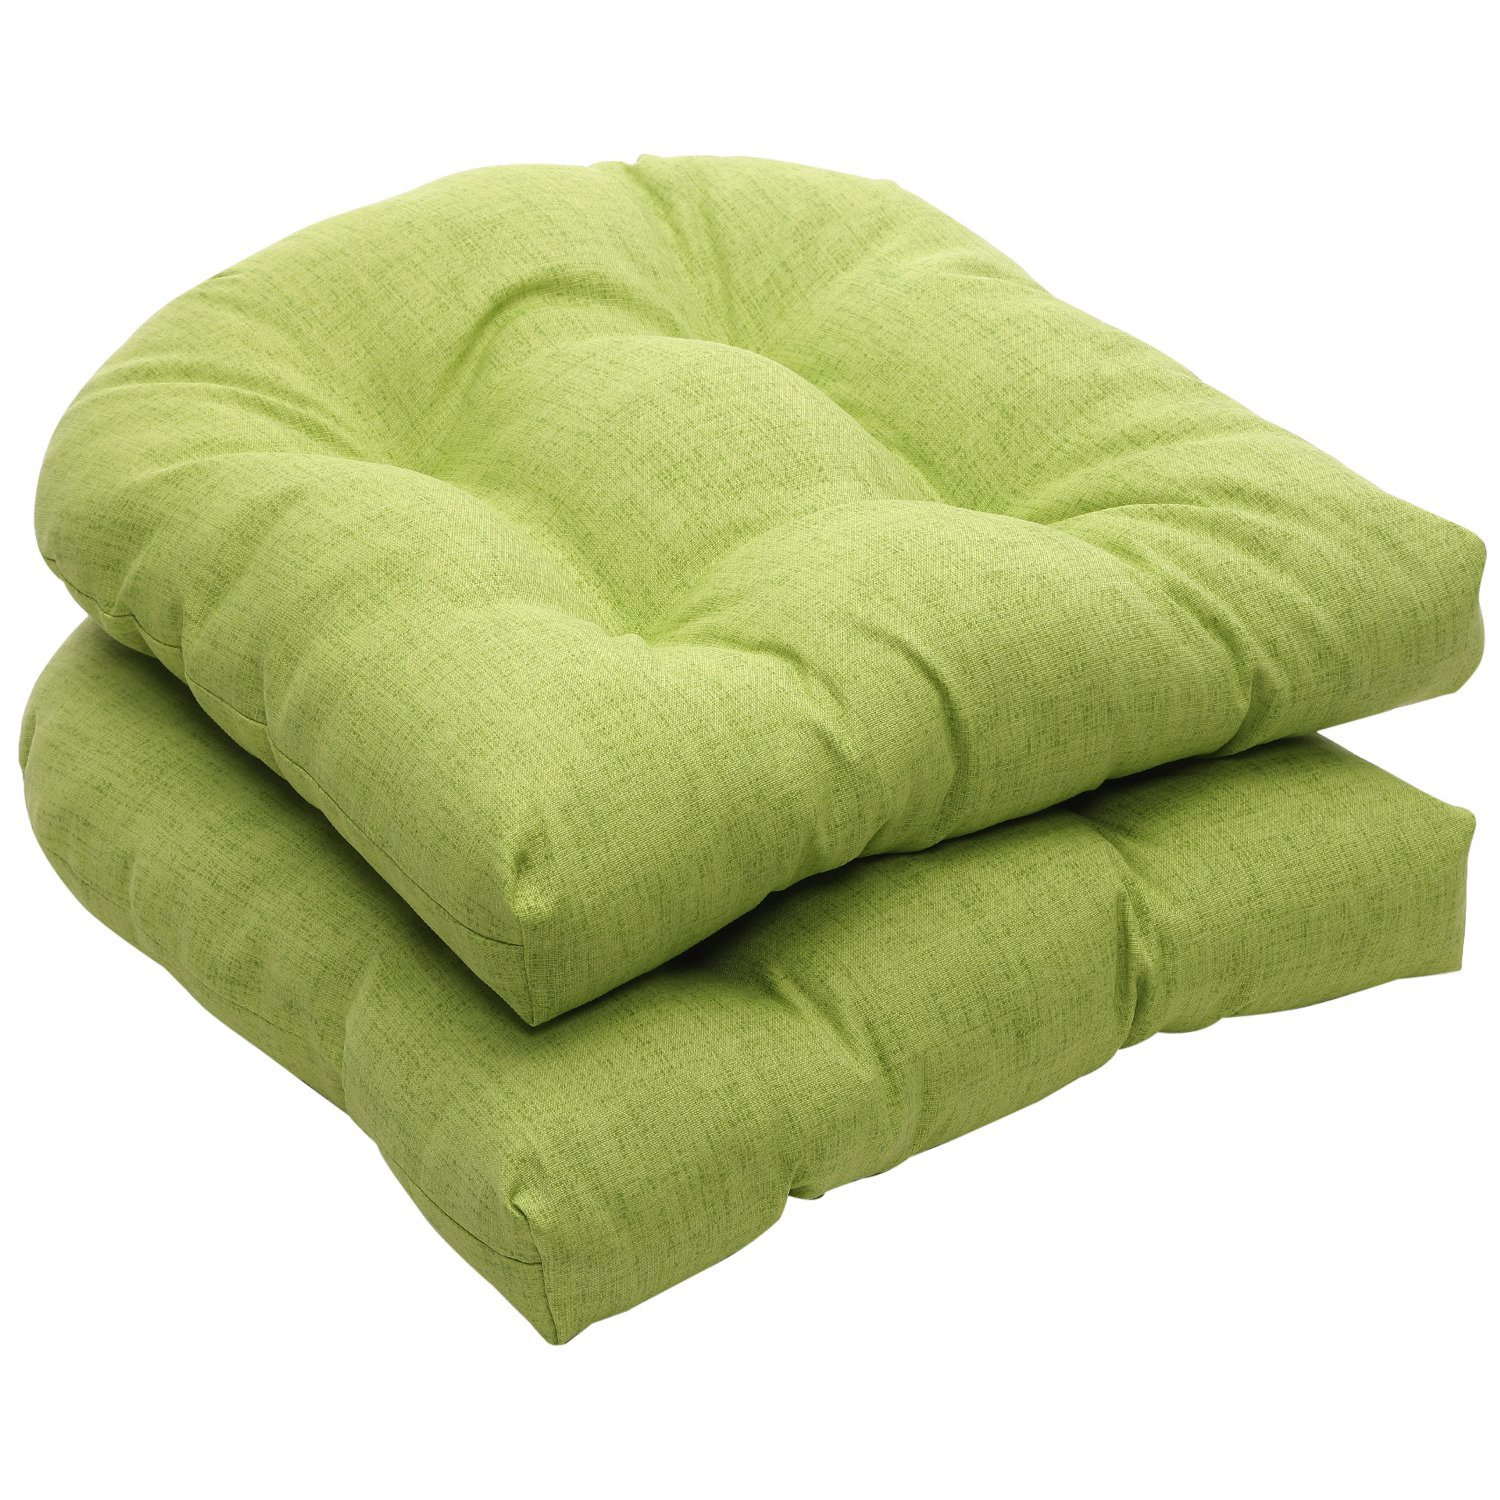 indoor outdoor chair cushions patio covers pillow perfect green textured solid wicker